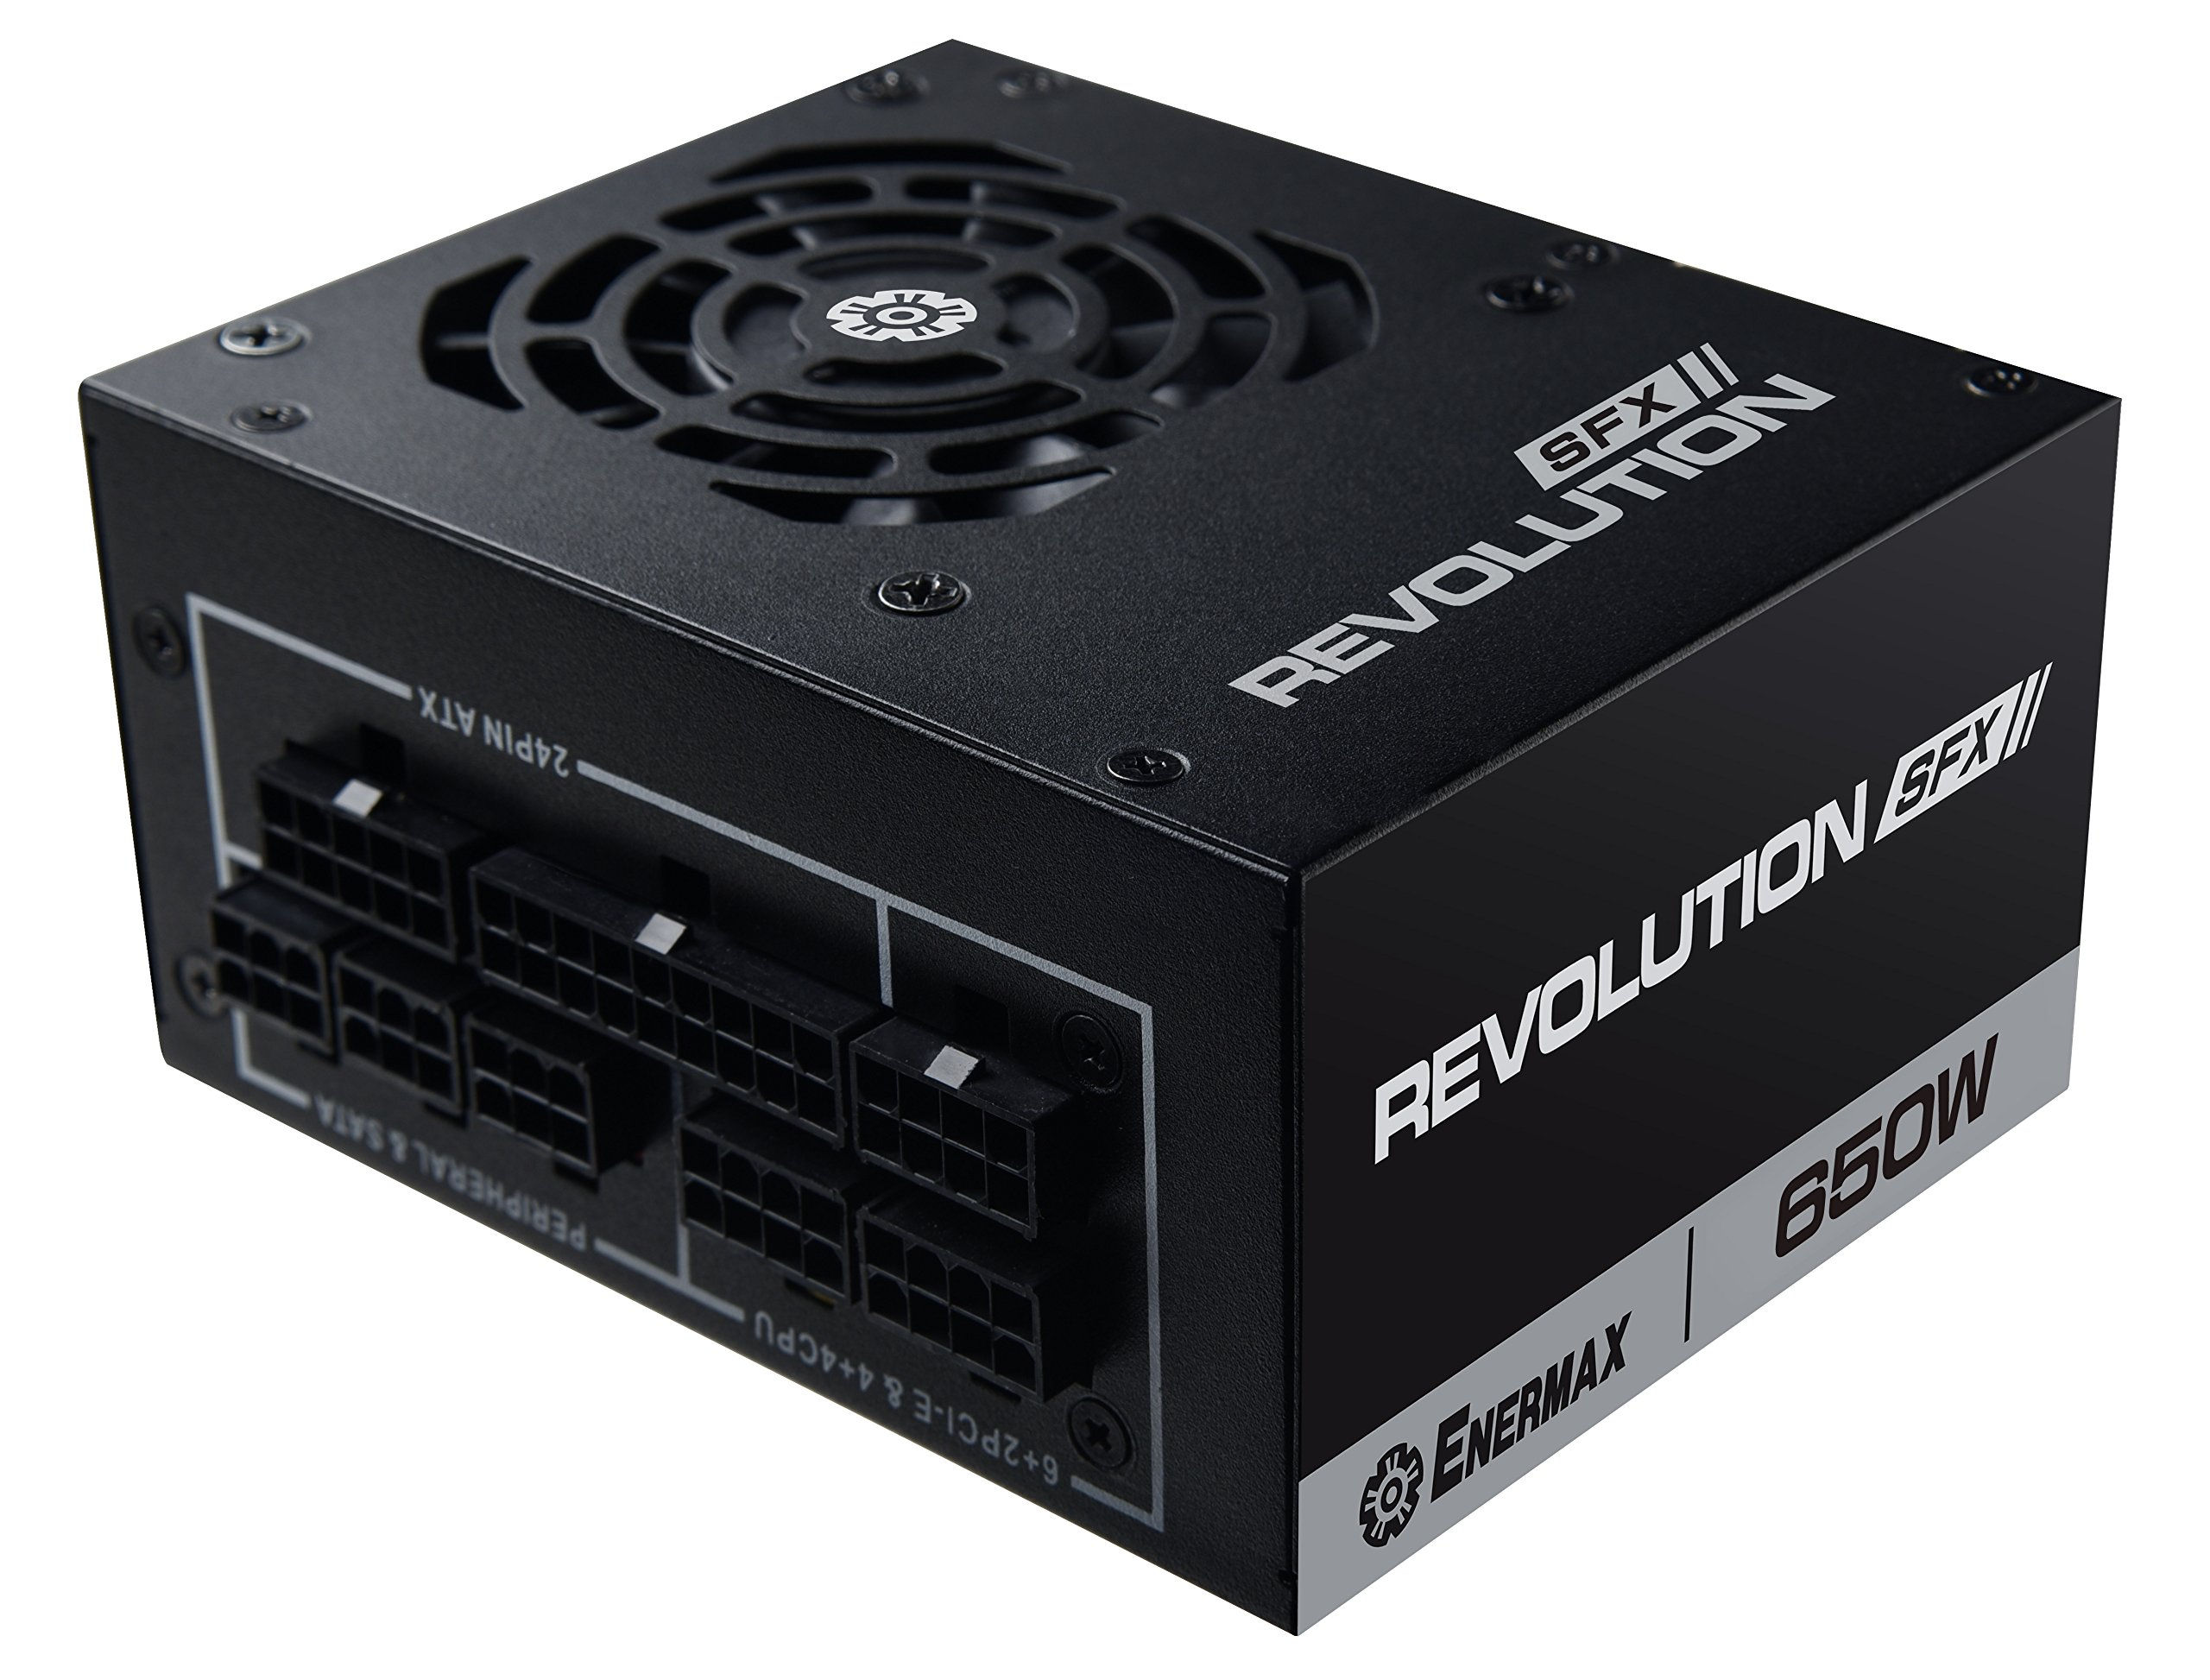 Enermax Revolution SFX 650W 80 PLUS Gold Full modular Semi-Fanless Power Supply with SFX-to-ATX PSU adapter bracket (ERV650SWT)Free Q-Boom Bluetooth Speaker inside